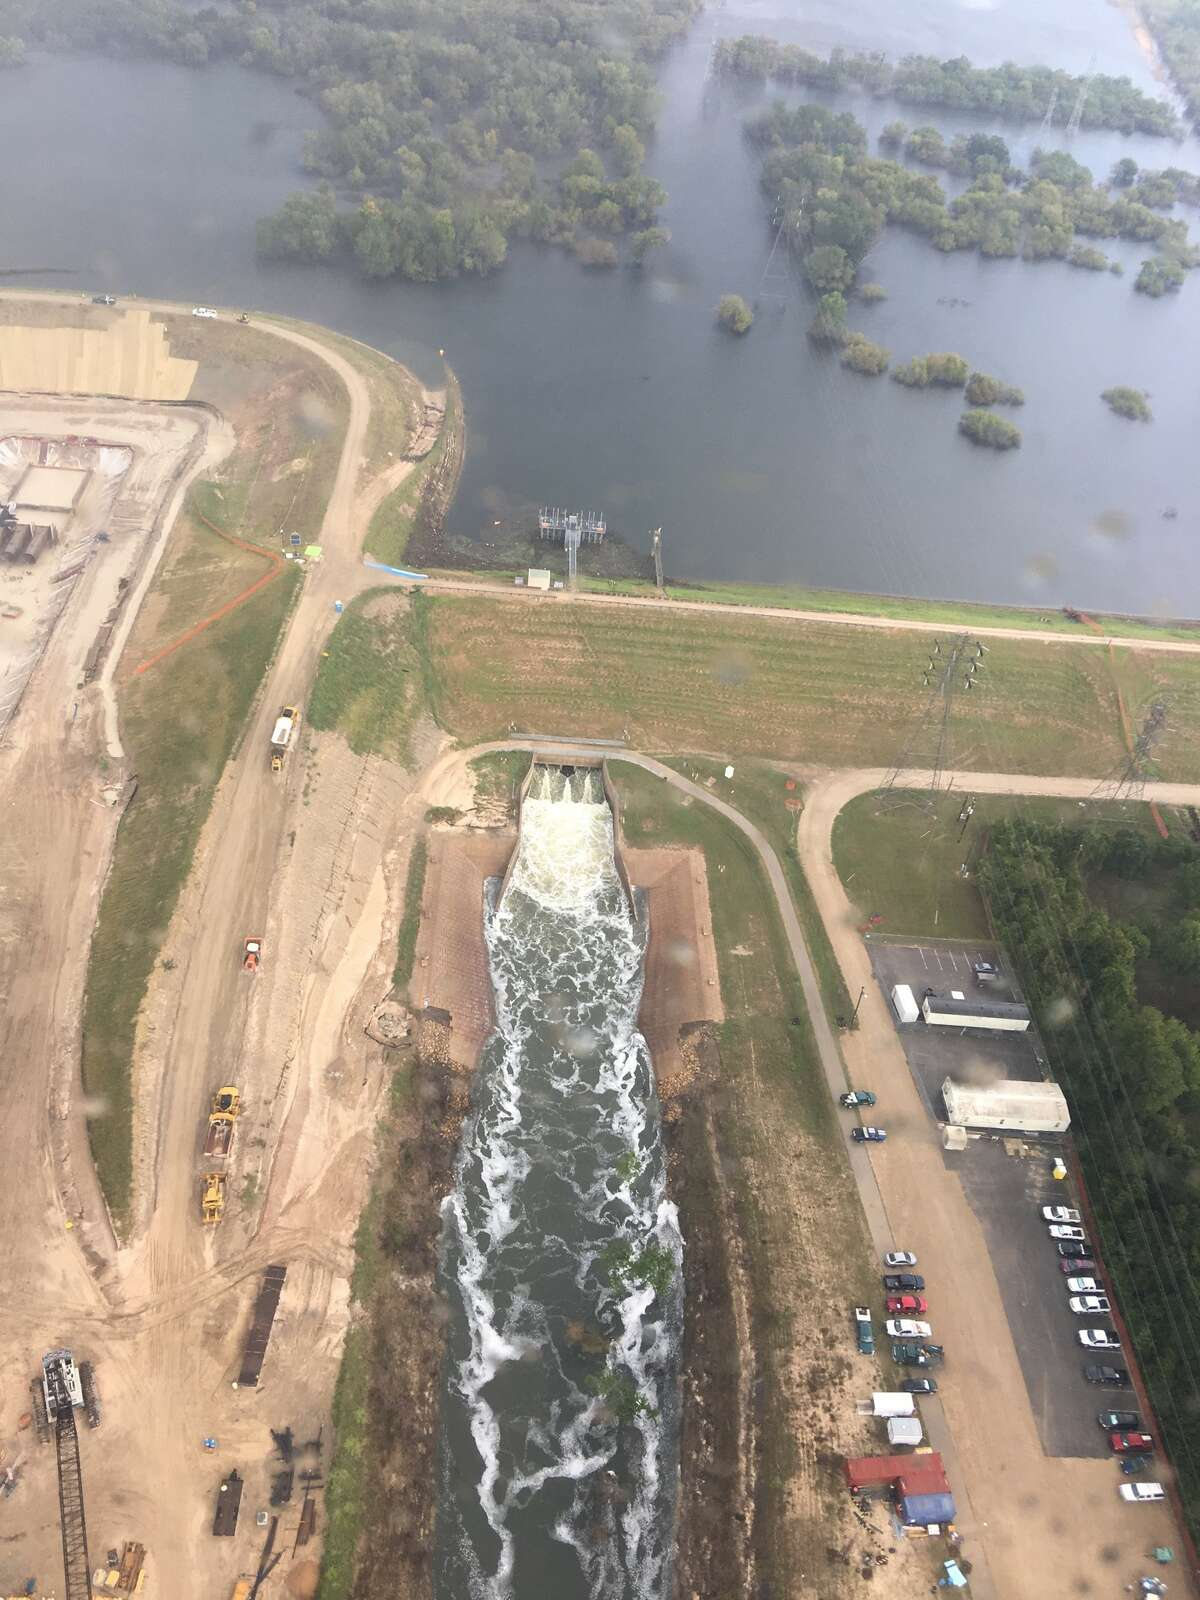 On Sept. 18, Congressman Michael McCaul, R-Texas, took an aerial tour of the flooded Houston area.